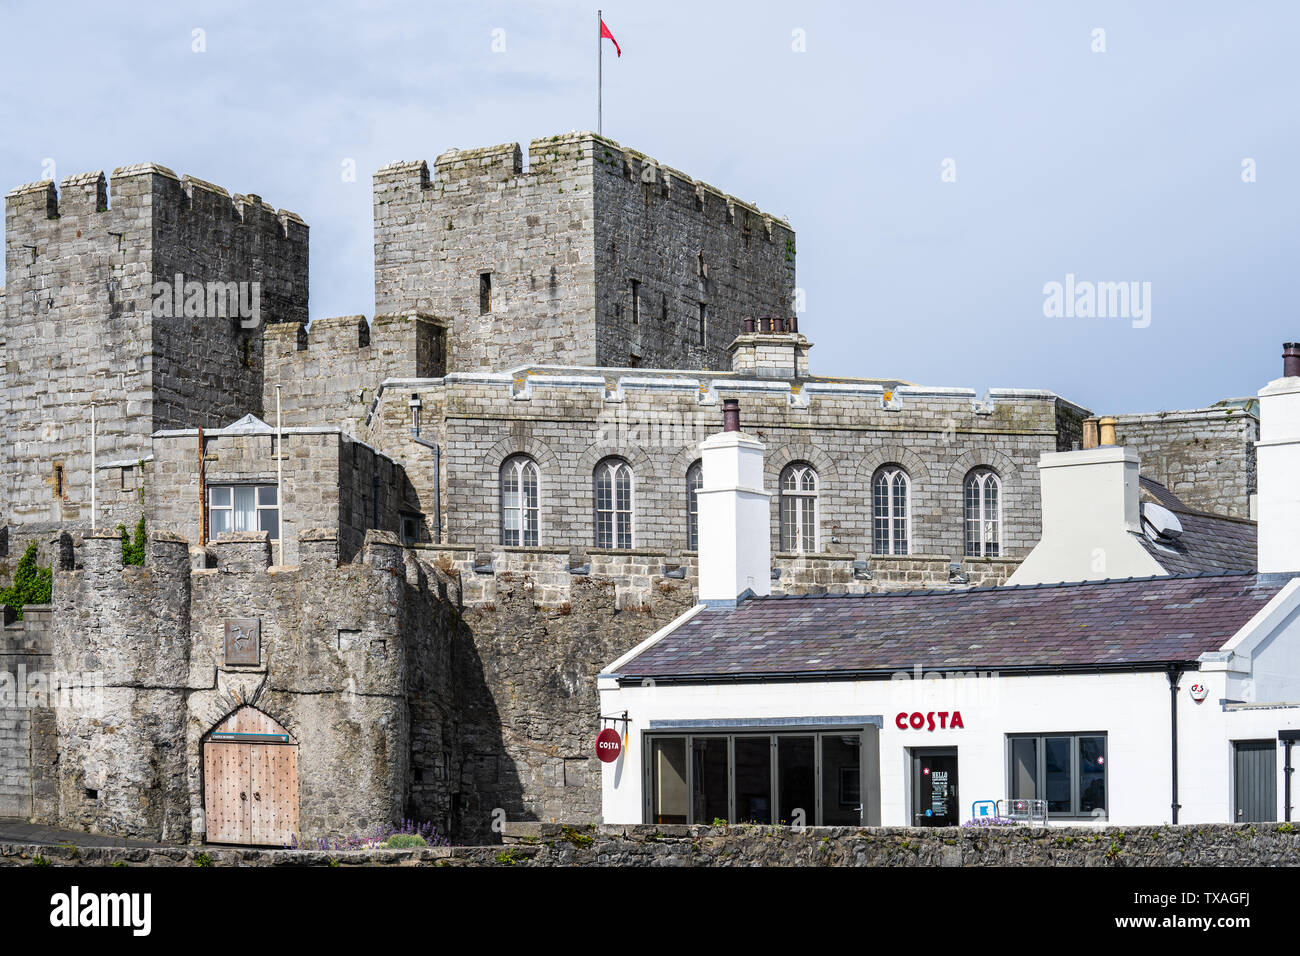 Castletown,Isle of Man, June 16, 2019. Castle Rushen is a medieval castle located in the Isle of Man's historic capital, Castletown, in the south of Stock Photo